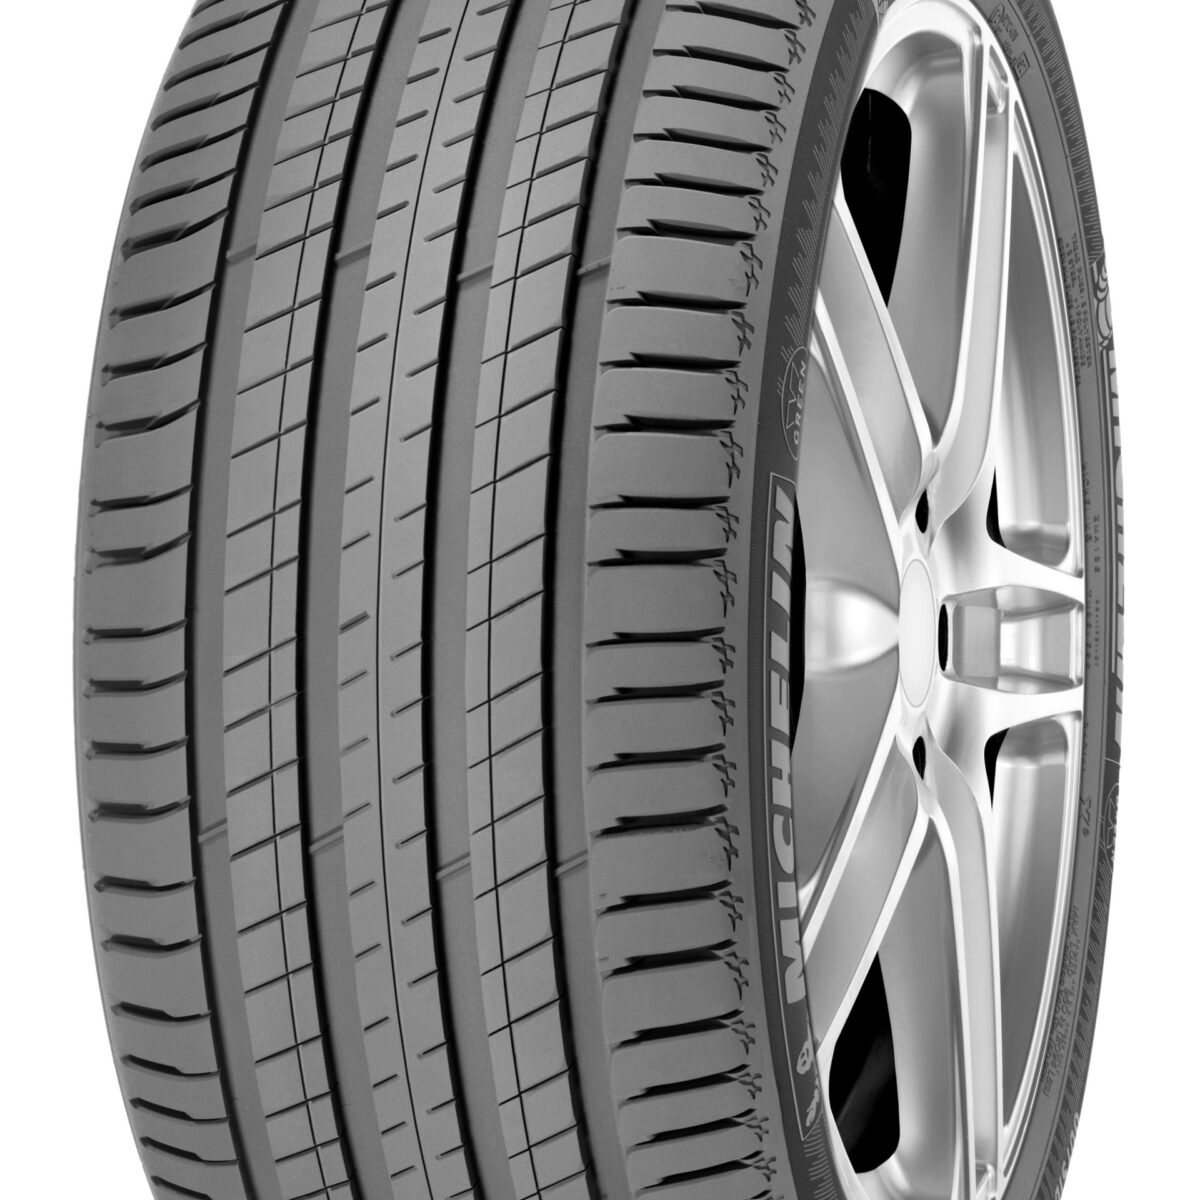 MICHELIN LATITUDE SPORT 3 255/55R19 111Y XL N0